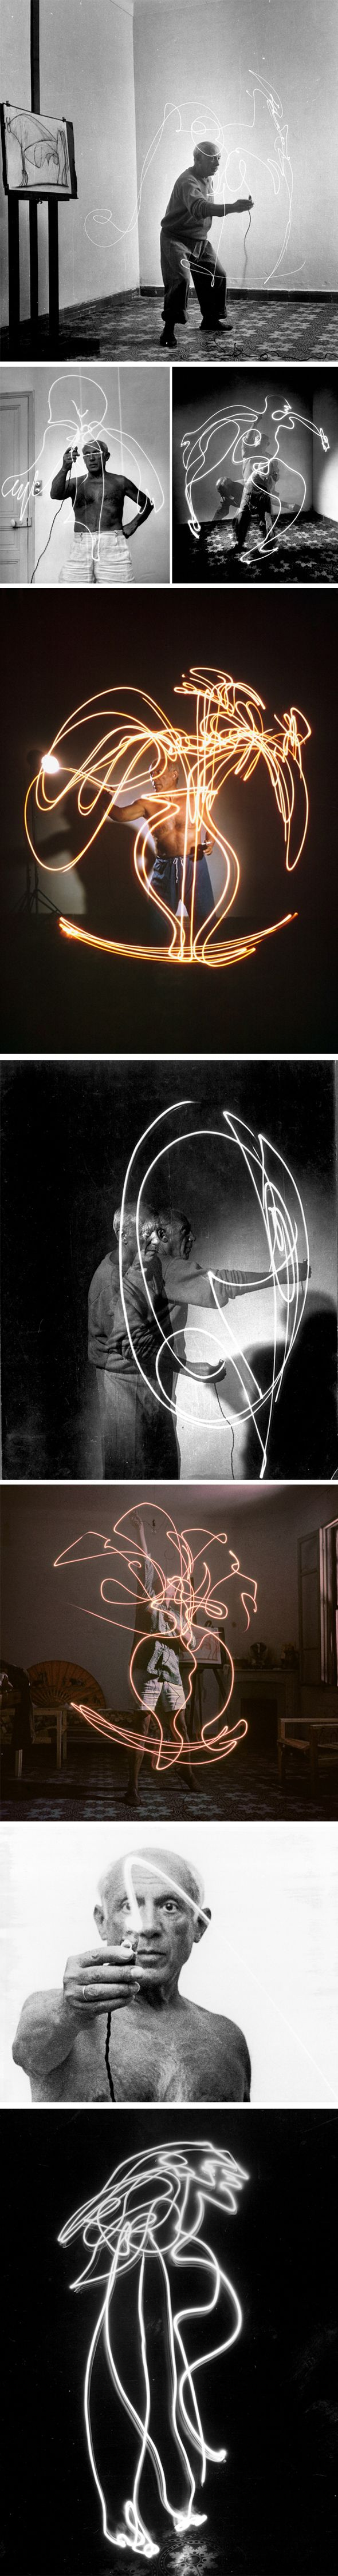 Pablo Picasso's light drawings. what a cool guy.